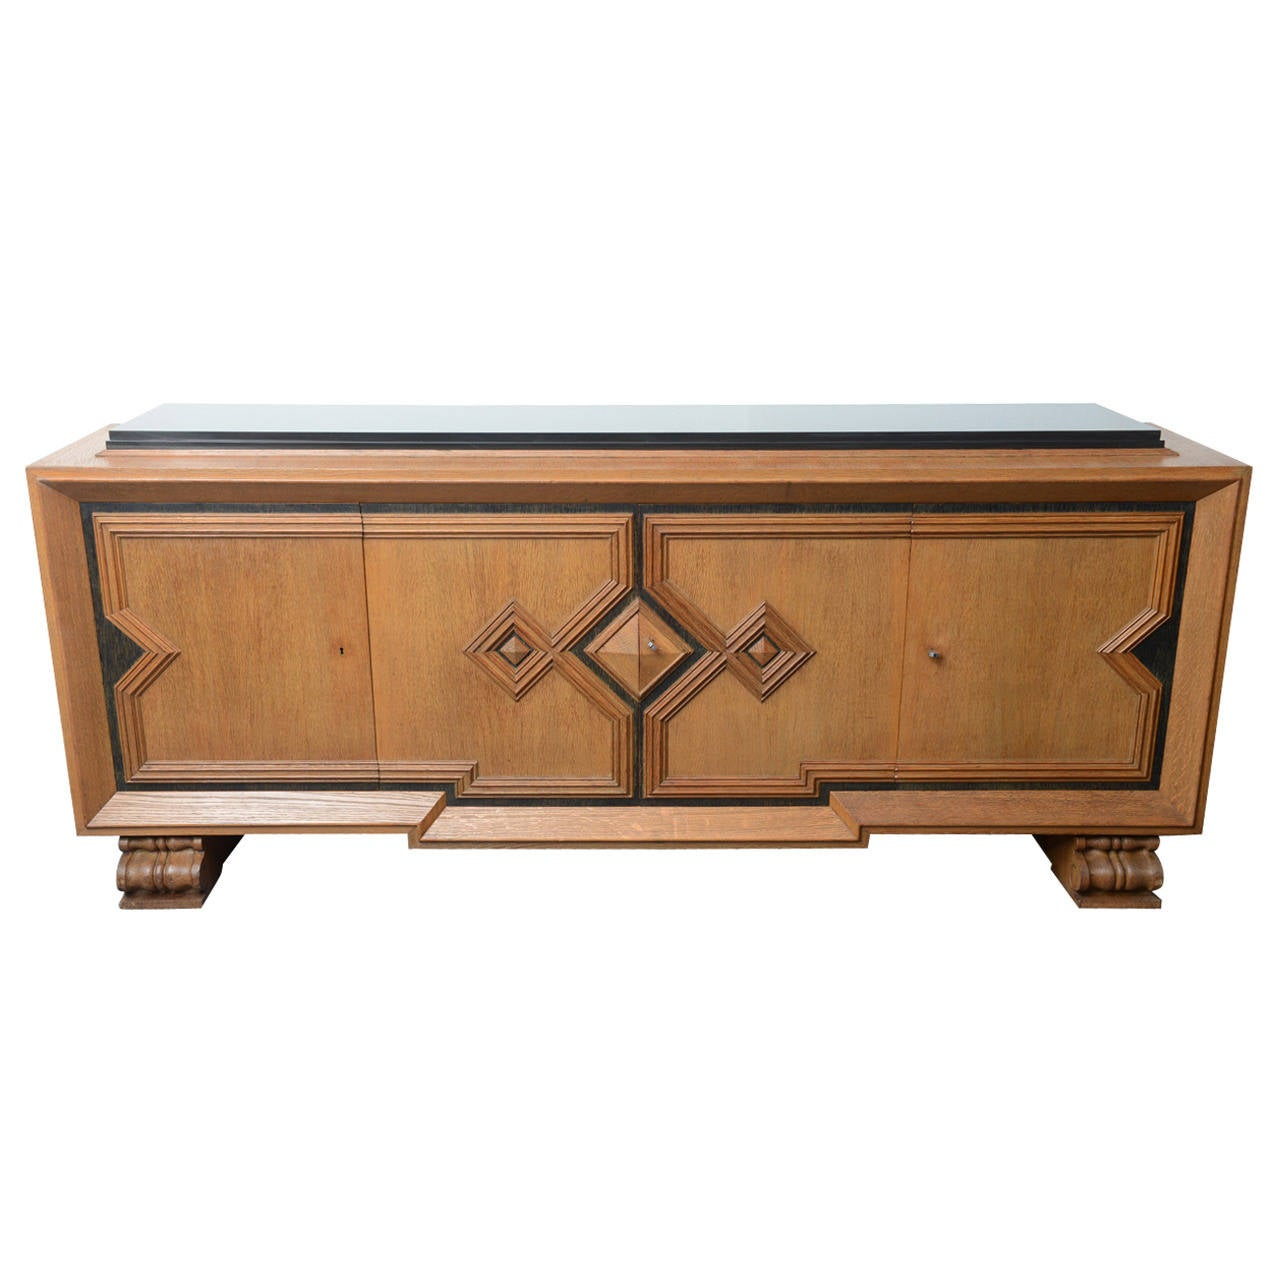 art deco cubist design cerused oak sideboard by de coene belgian top marble at 1stdibs. Black Bedroom Furniture Sets. Home Design Ideas